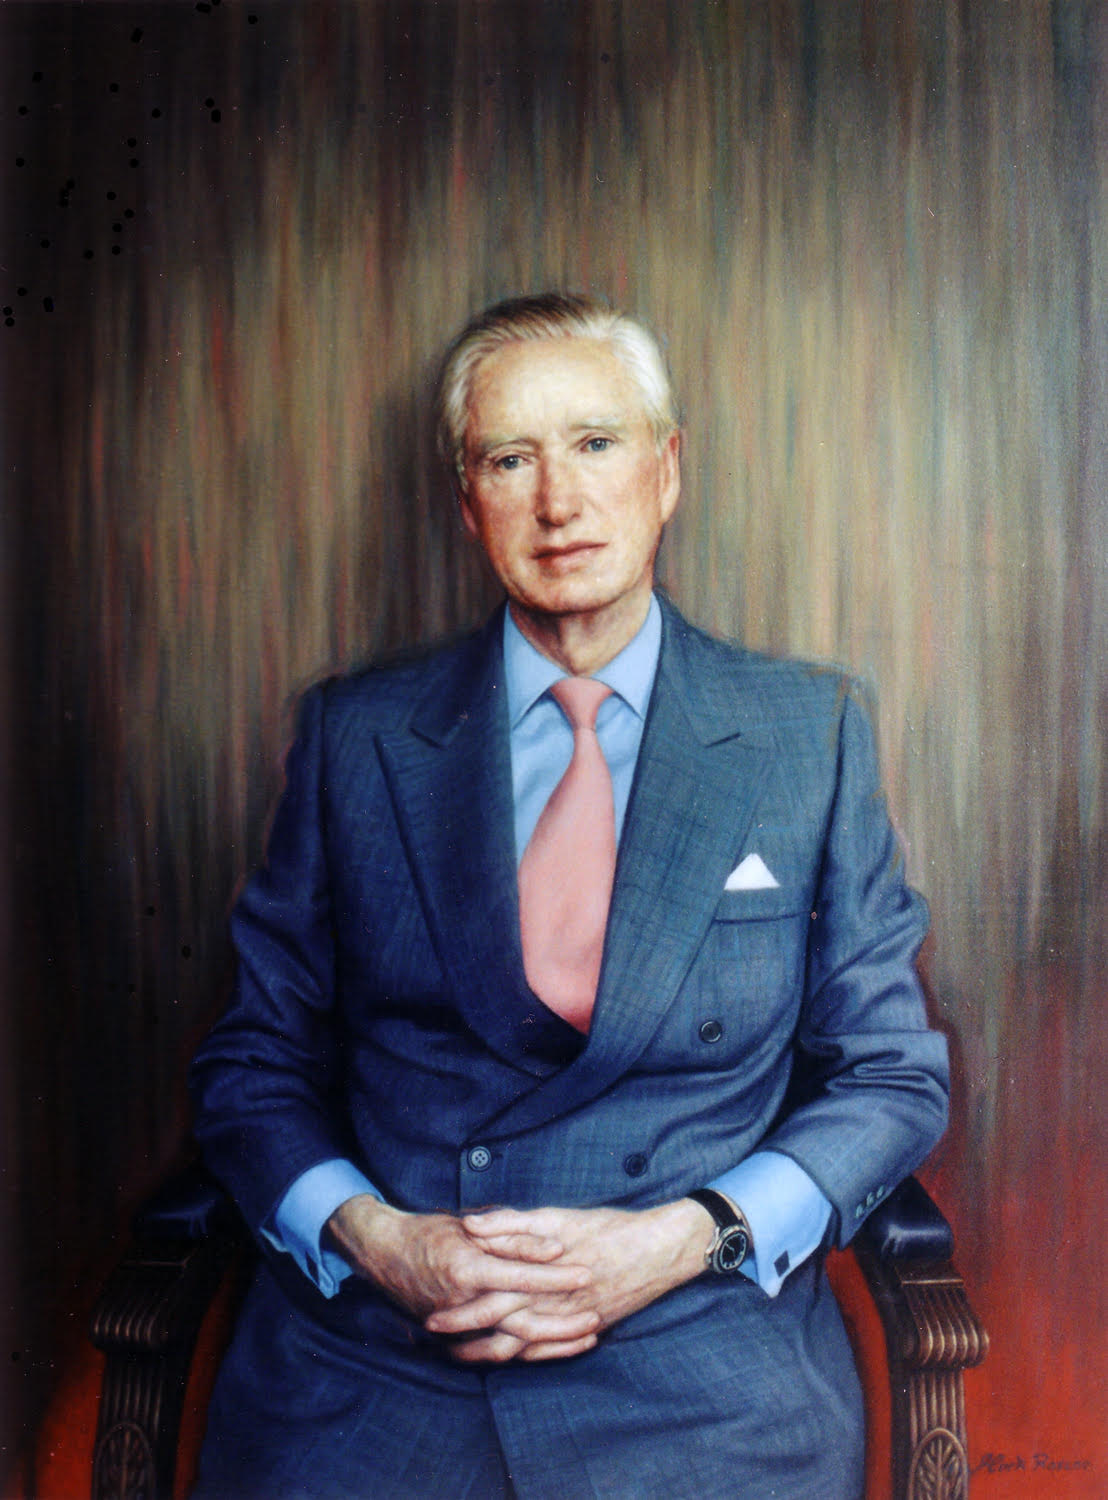 "'John R. Asprey' Mark Roscoe Oil on canvas, 30"" x 40"""